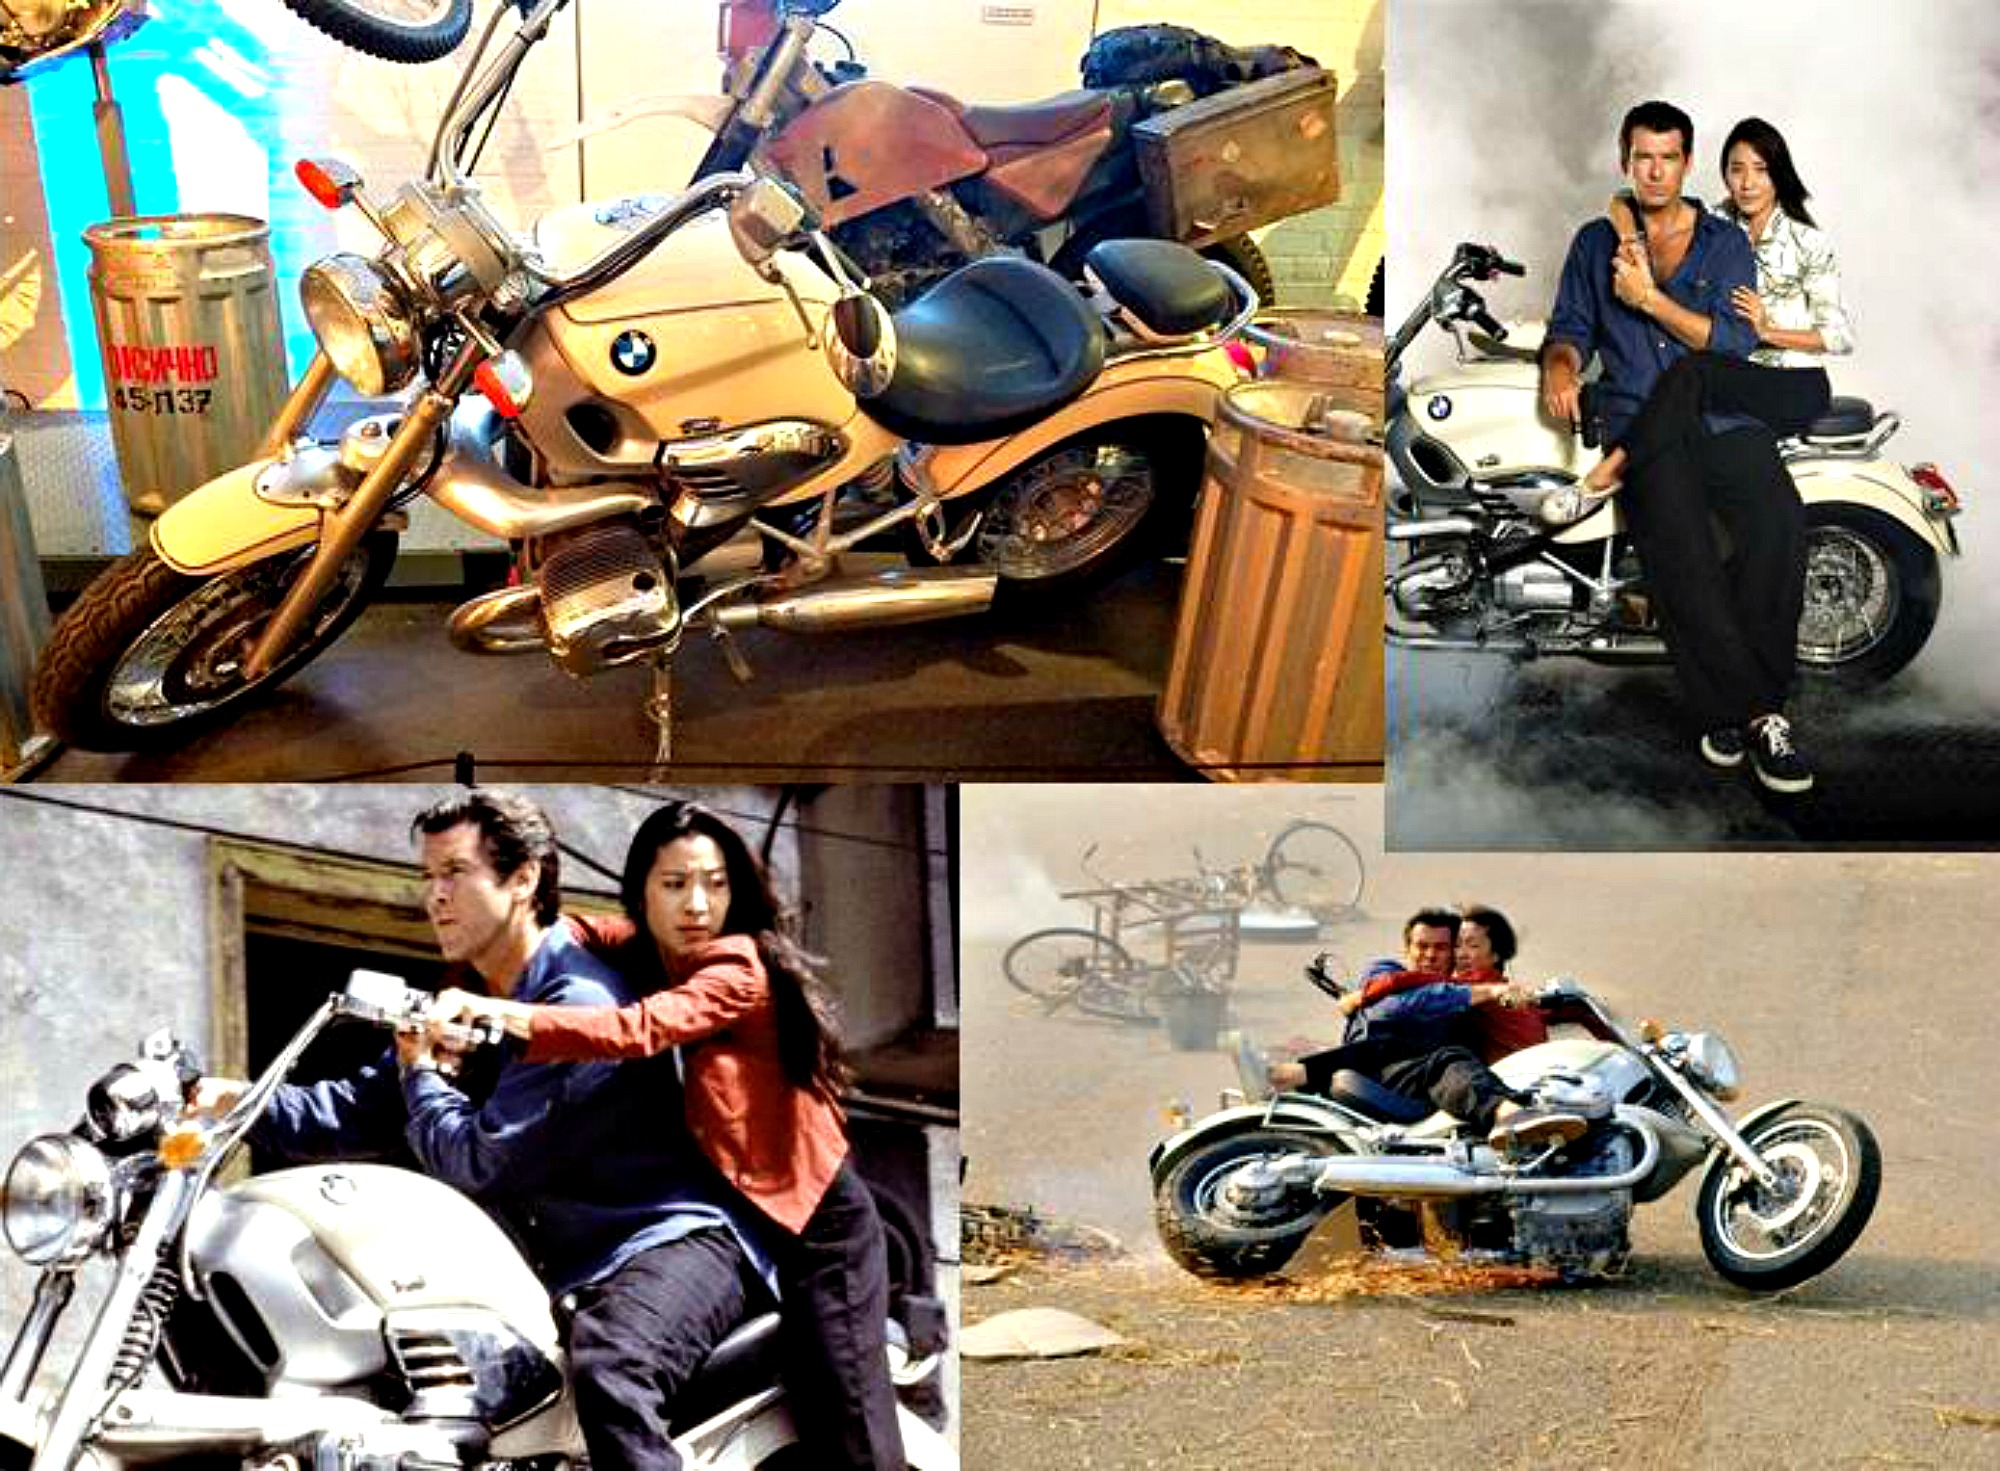 """7d02b10cde Impressive to see up close that cool huge BMW motorcycle that Bond/Brosnan  and Michelle Yeoh drove together while handcuffed in """"Tomorrow Never Dies""""  on ..."""